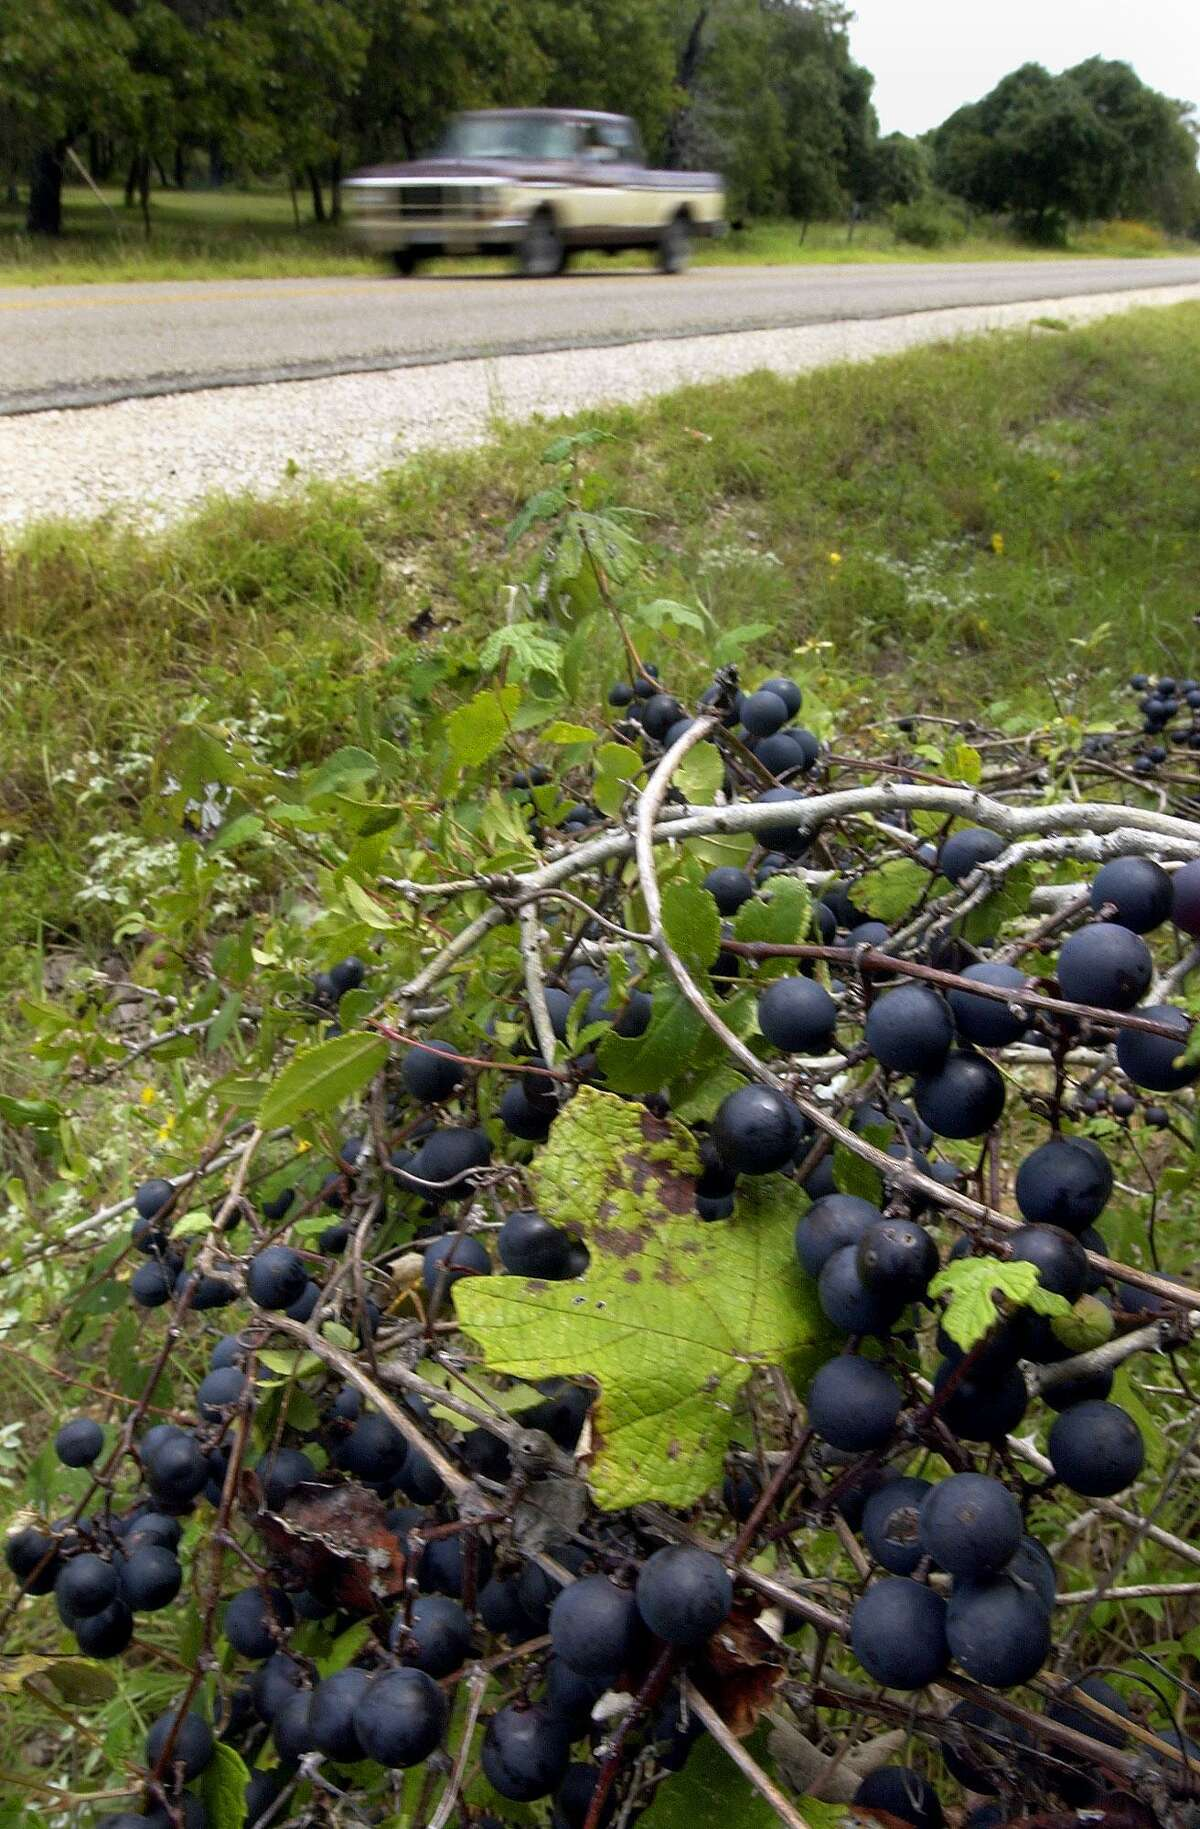 Wild mustang grapes grow along a Texas roadside. In Connecticut, the ripening grapes - and their aroma - are a sign of fall approaching.